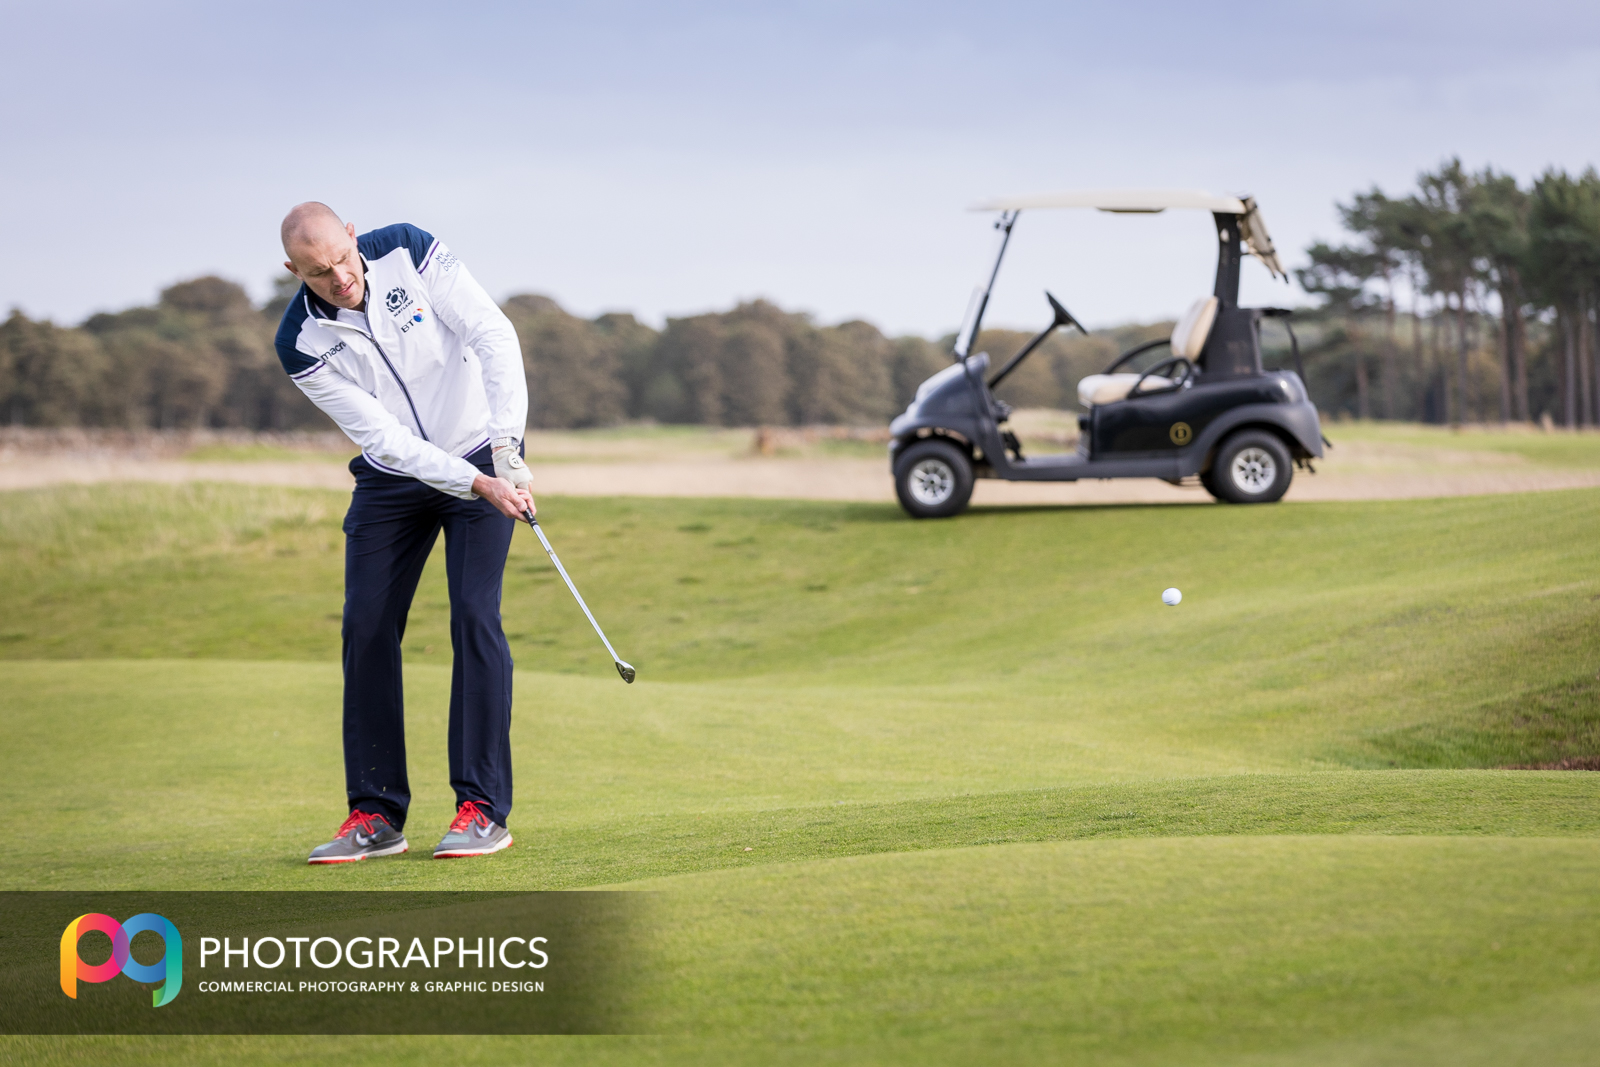 charity-golf-pr-event-photography-glasgow-edinburgh-scotland-21.jpg